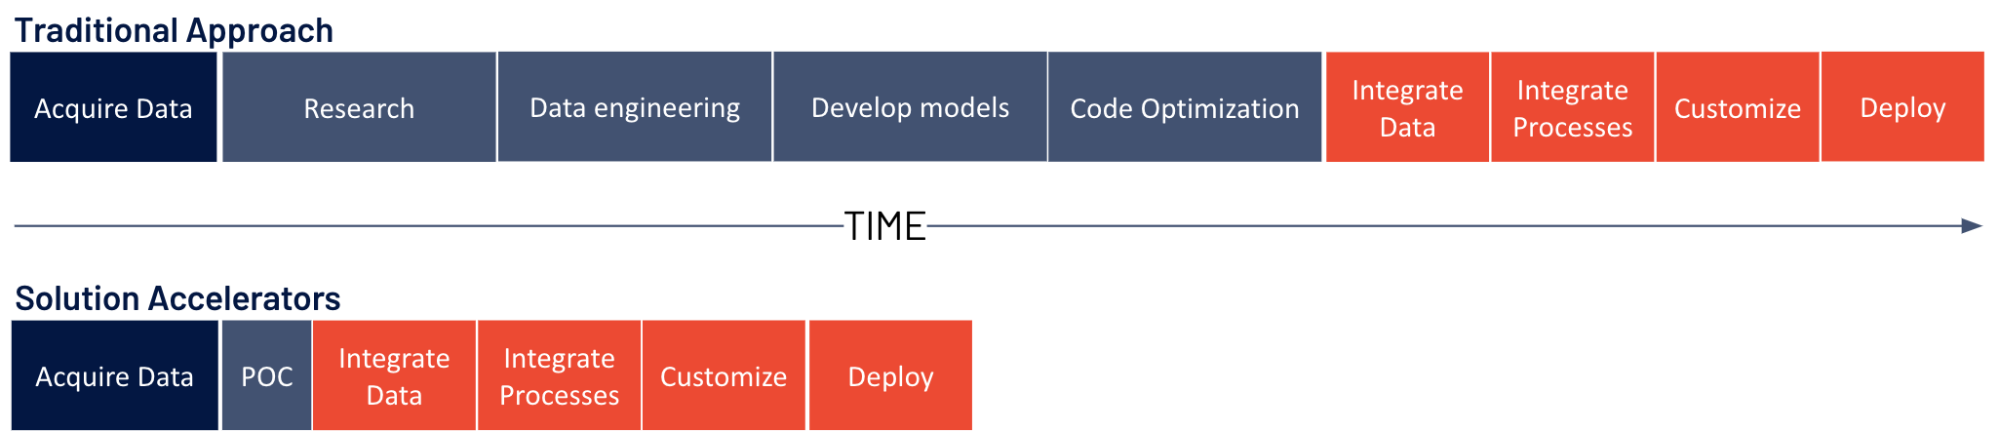 Databricks Solution Accelerators vs. the traditional approach